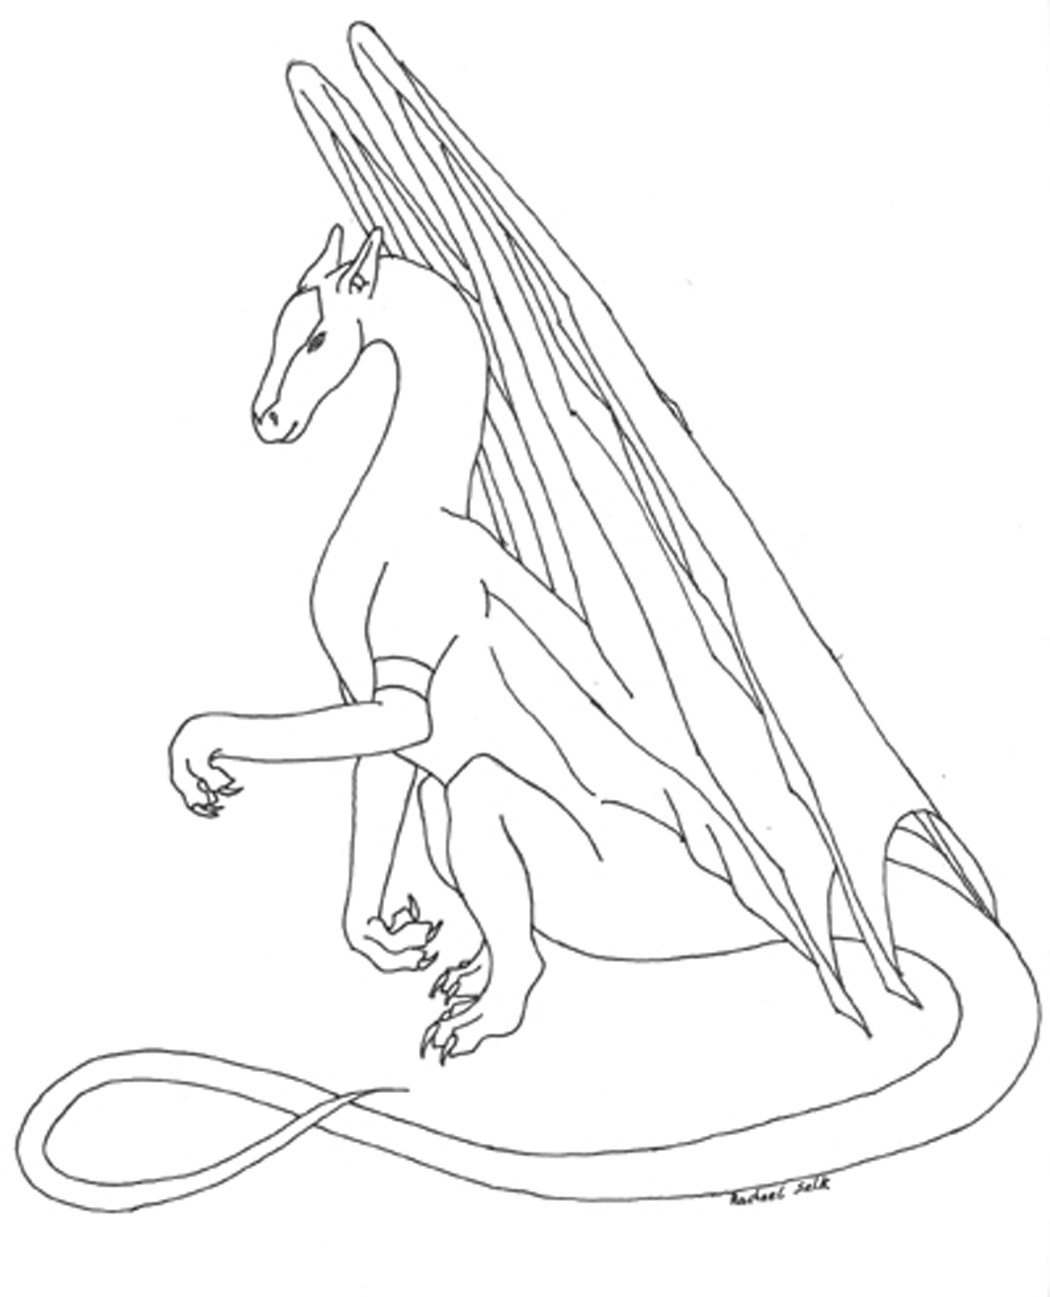 Coloring pages of dragons